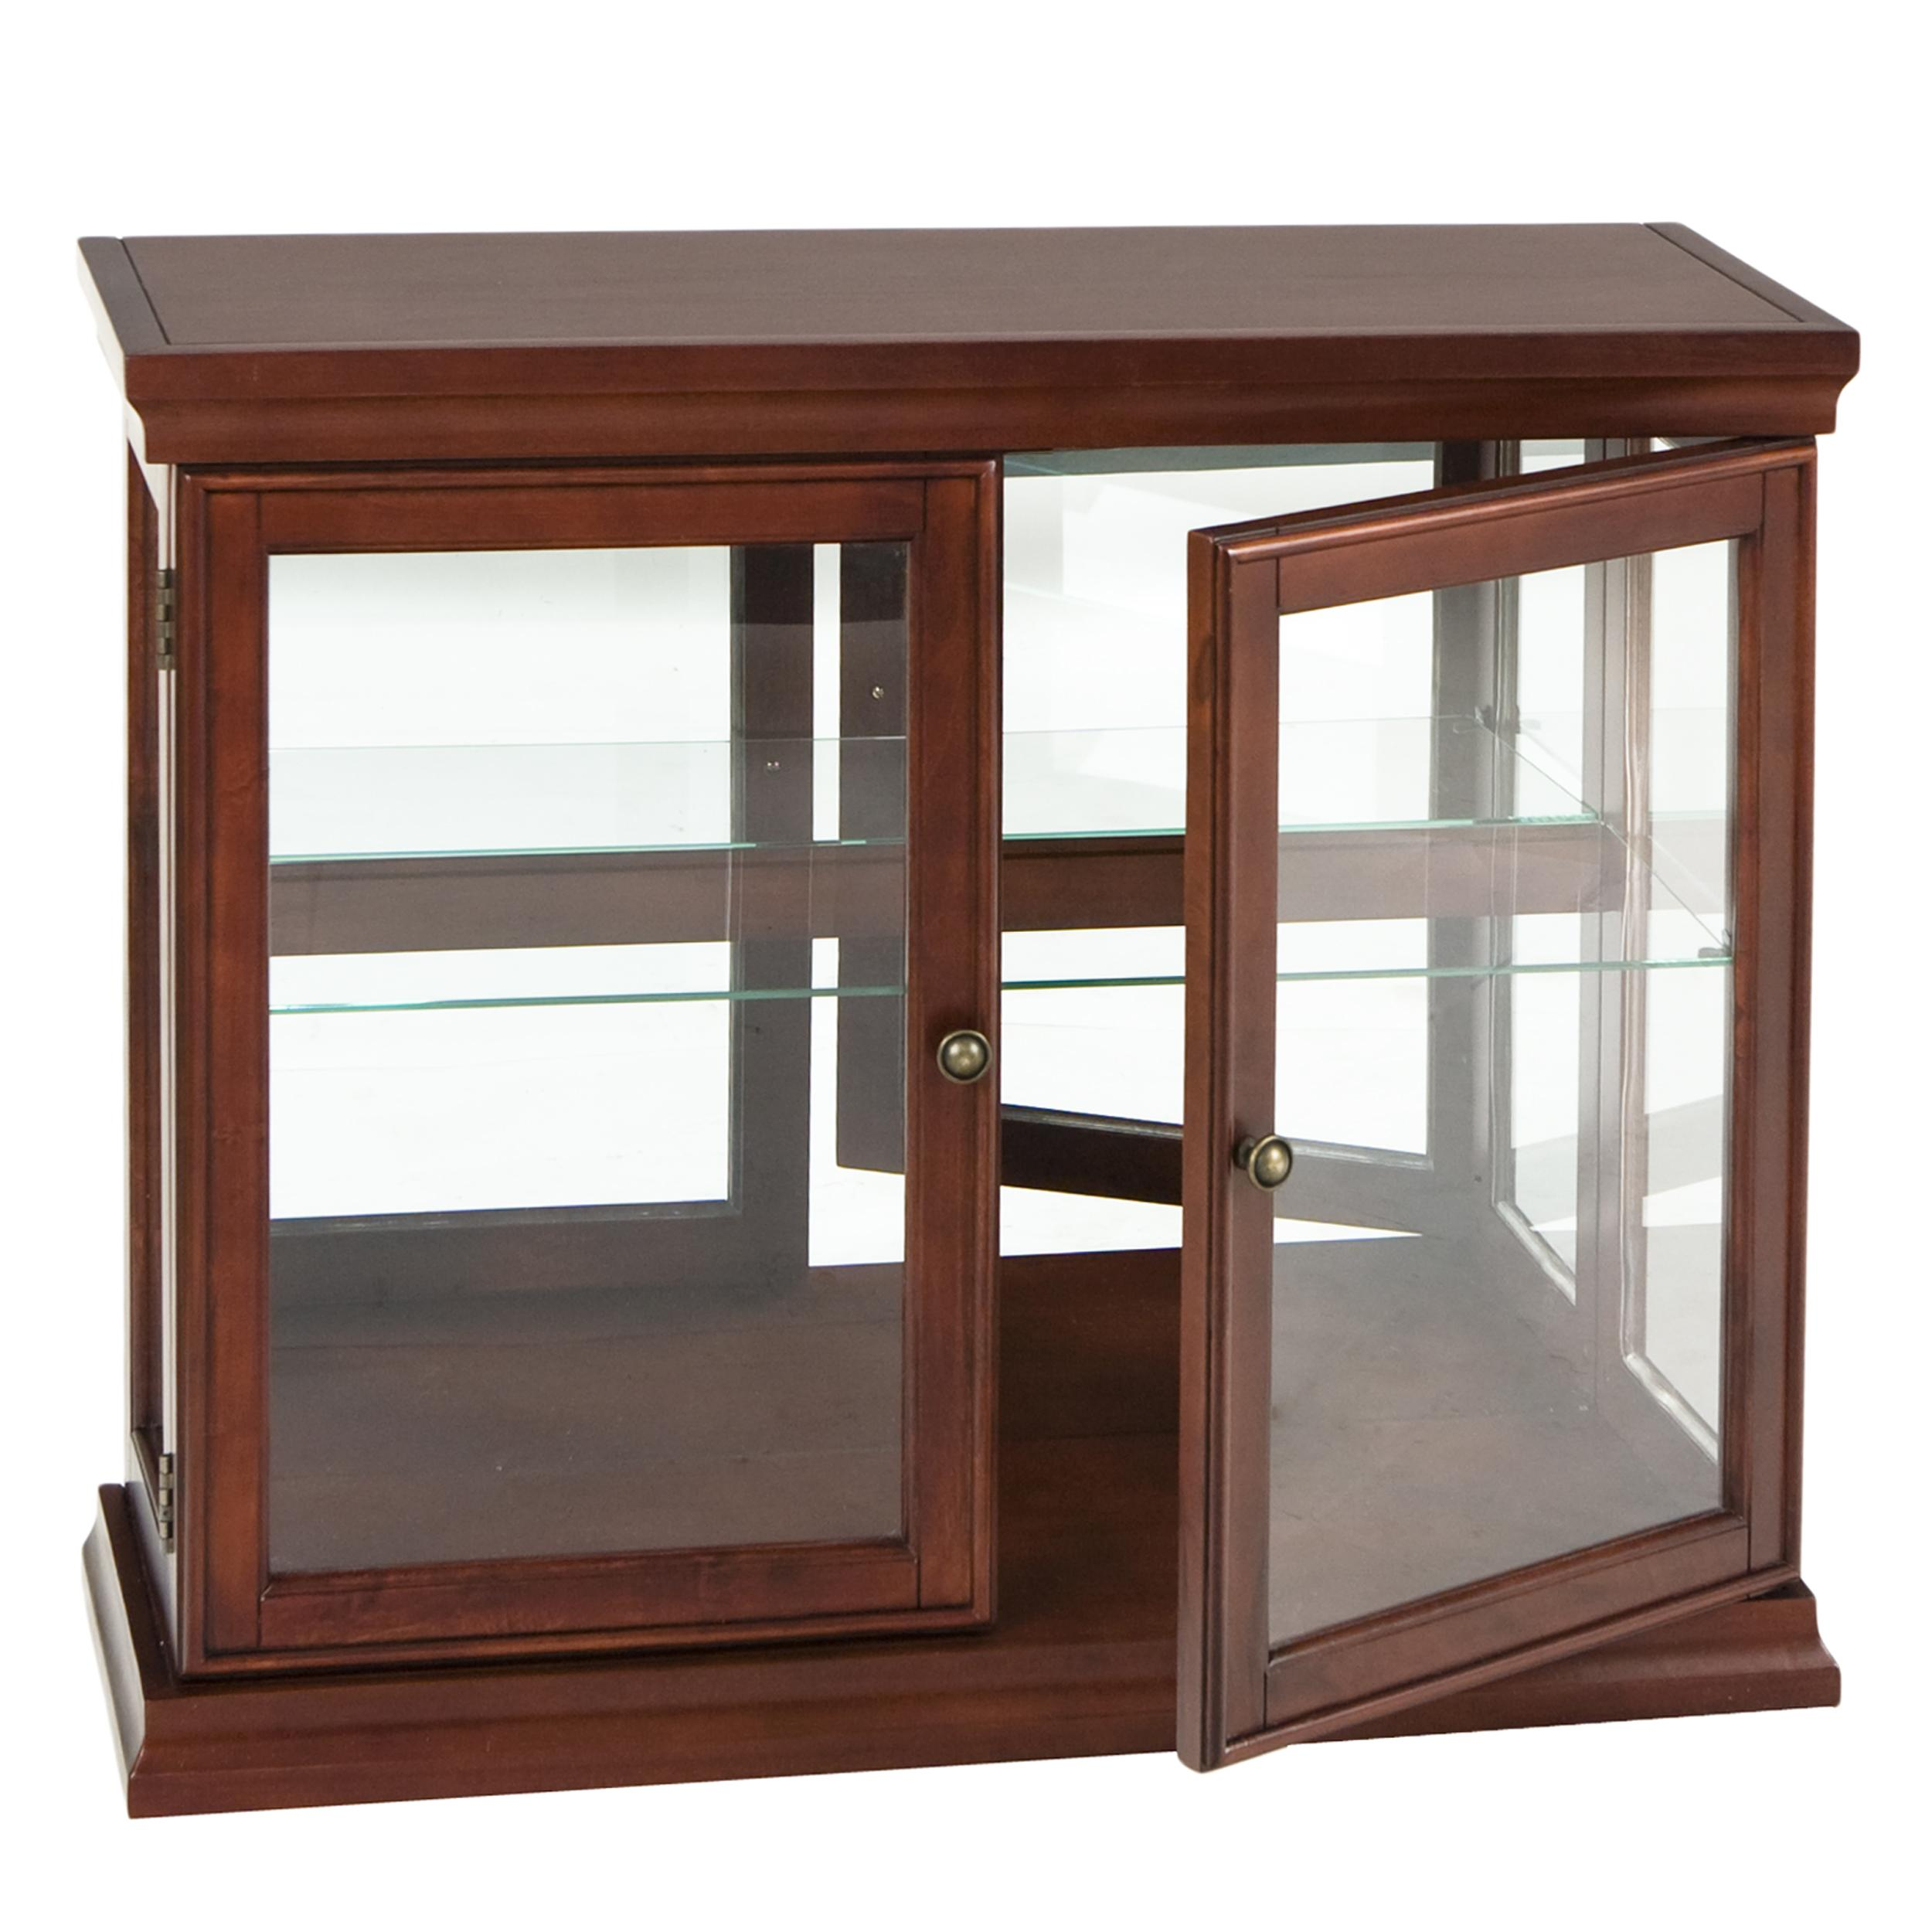 drexel large this solid heritage pin glossy cabinets in glass china featured cabinet wood a finish great light buffet with walnut condition cheap is